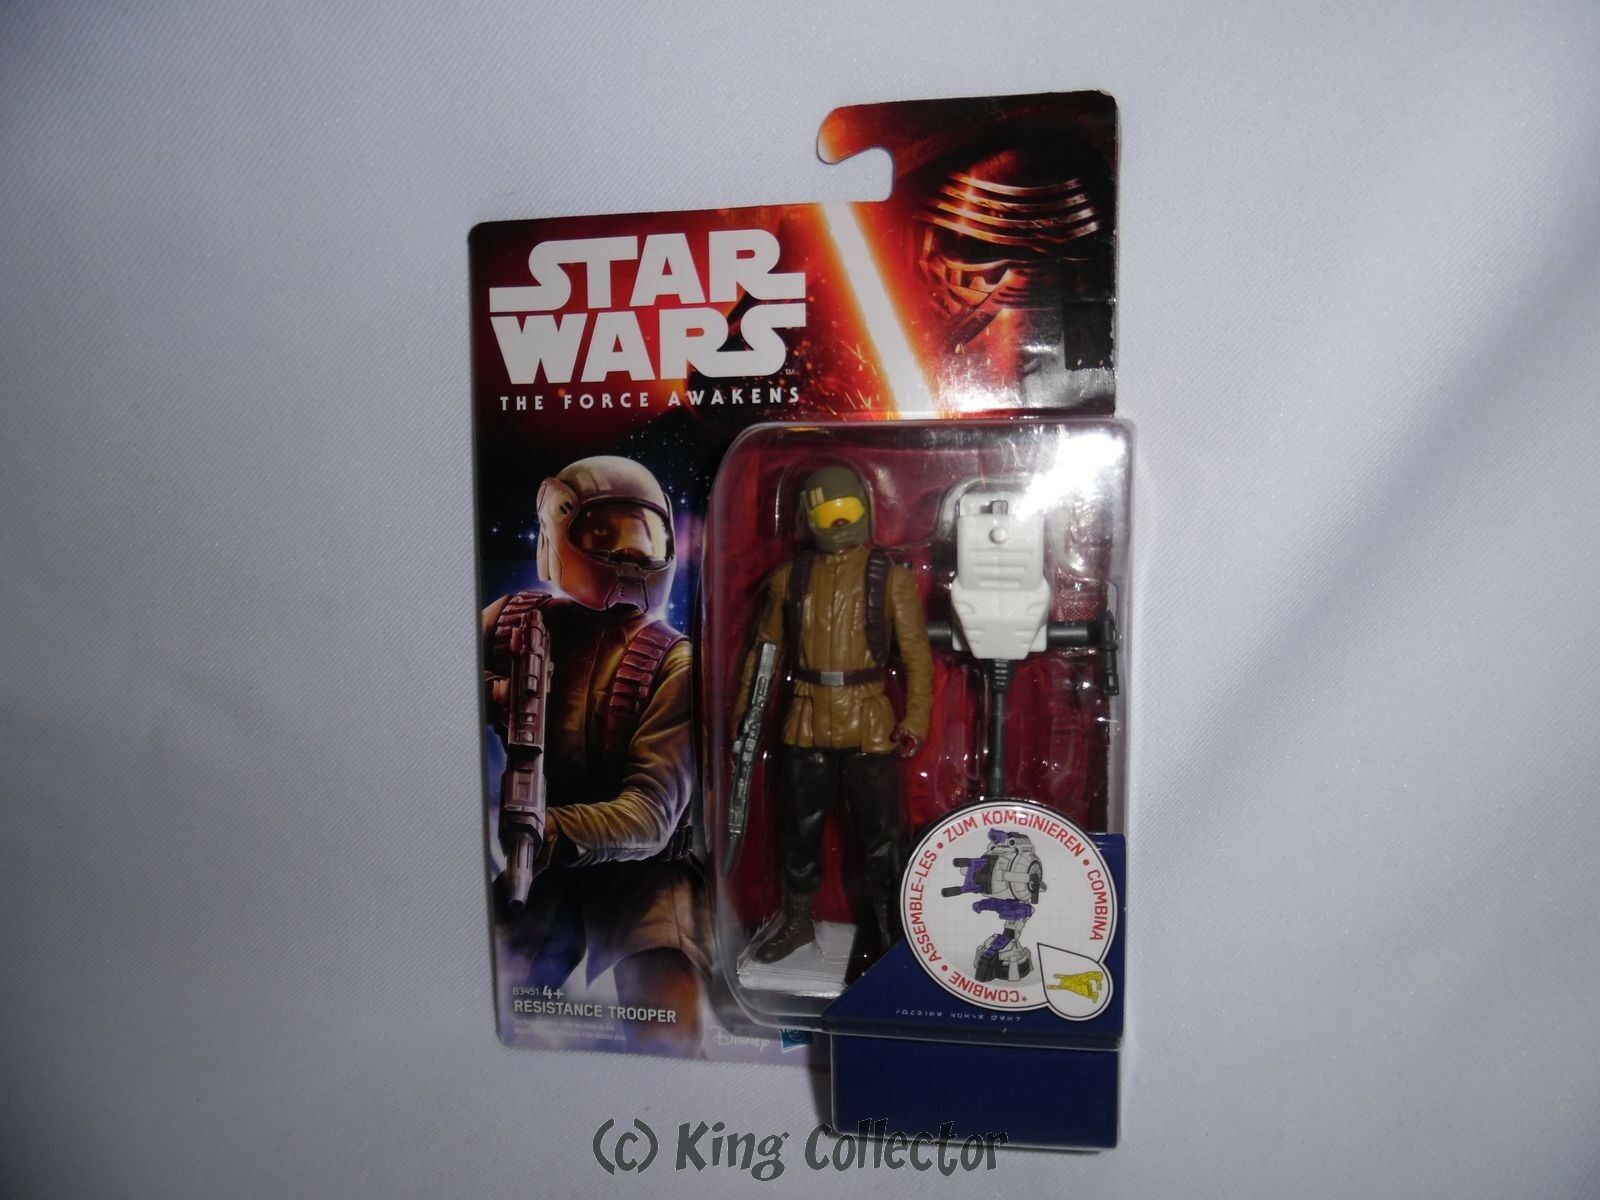 StarWars figurine : Figurine - Star Wars - Jungle/Space Wave - Resistance Trooper - Hasbro